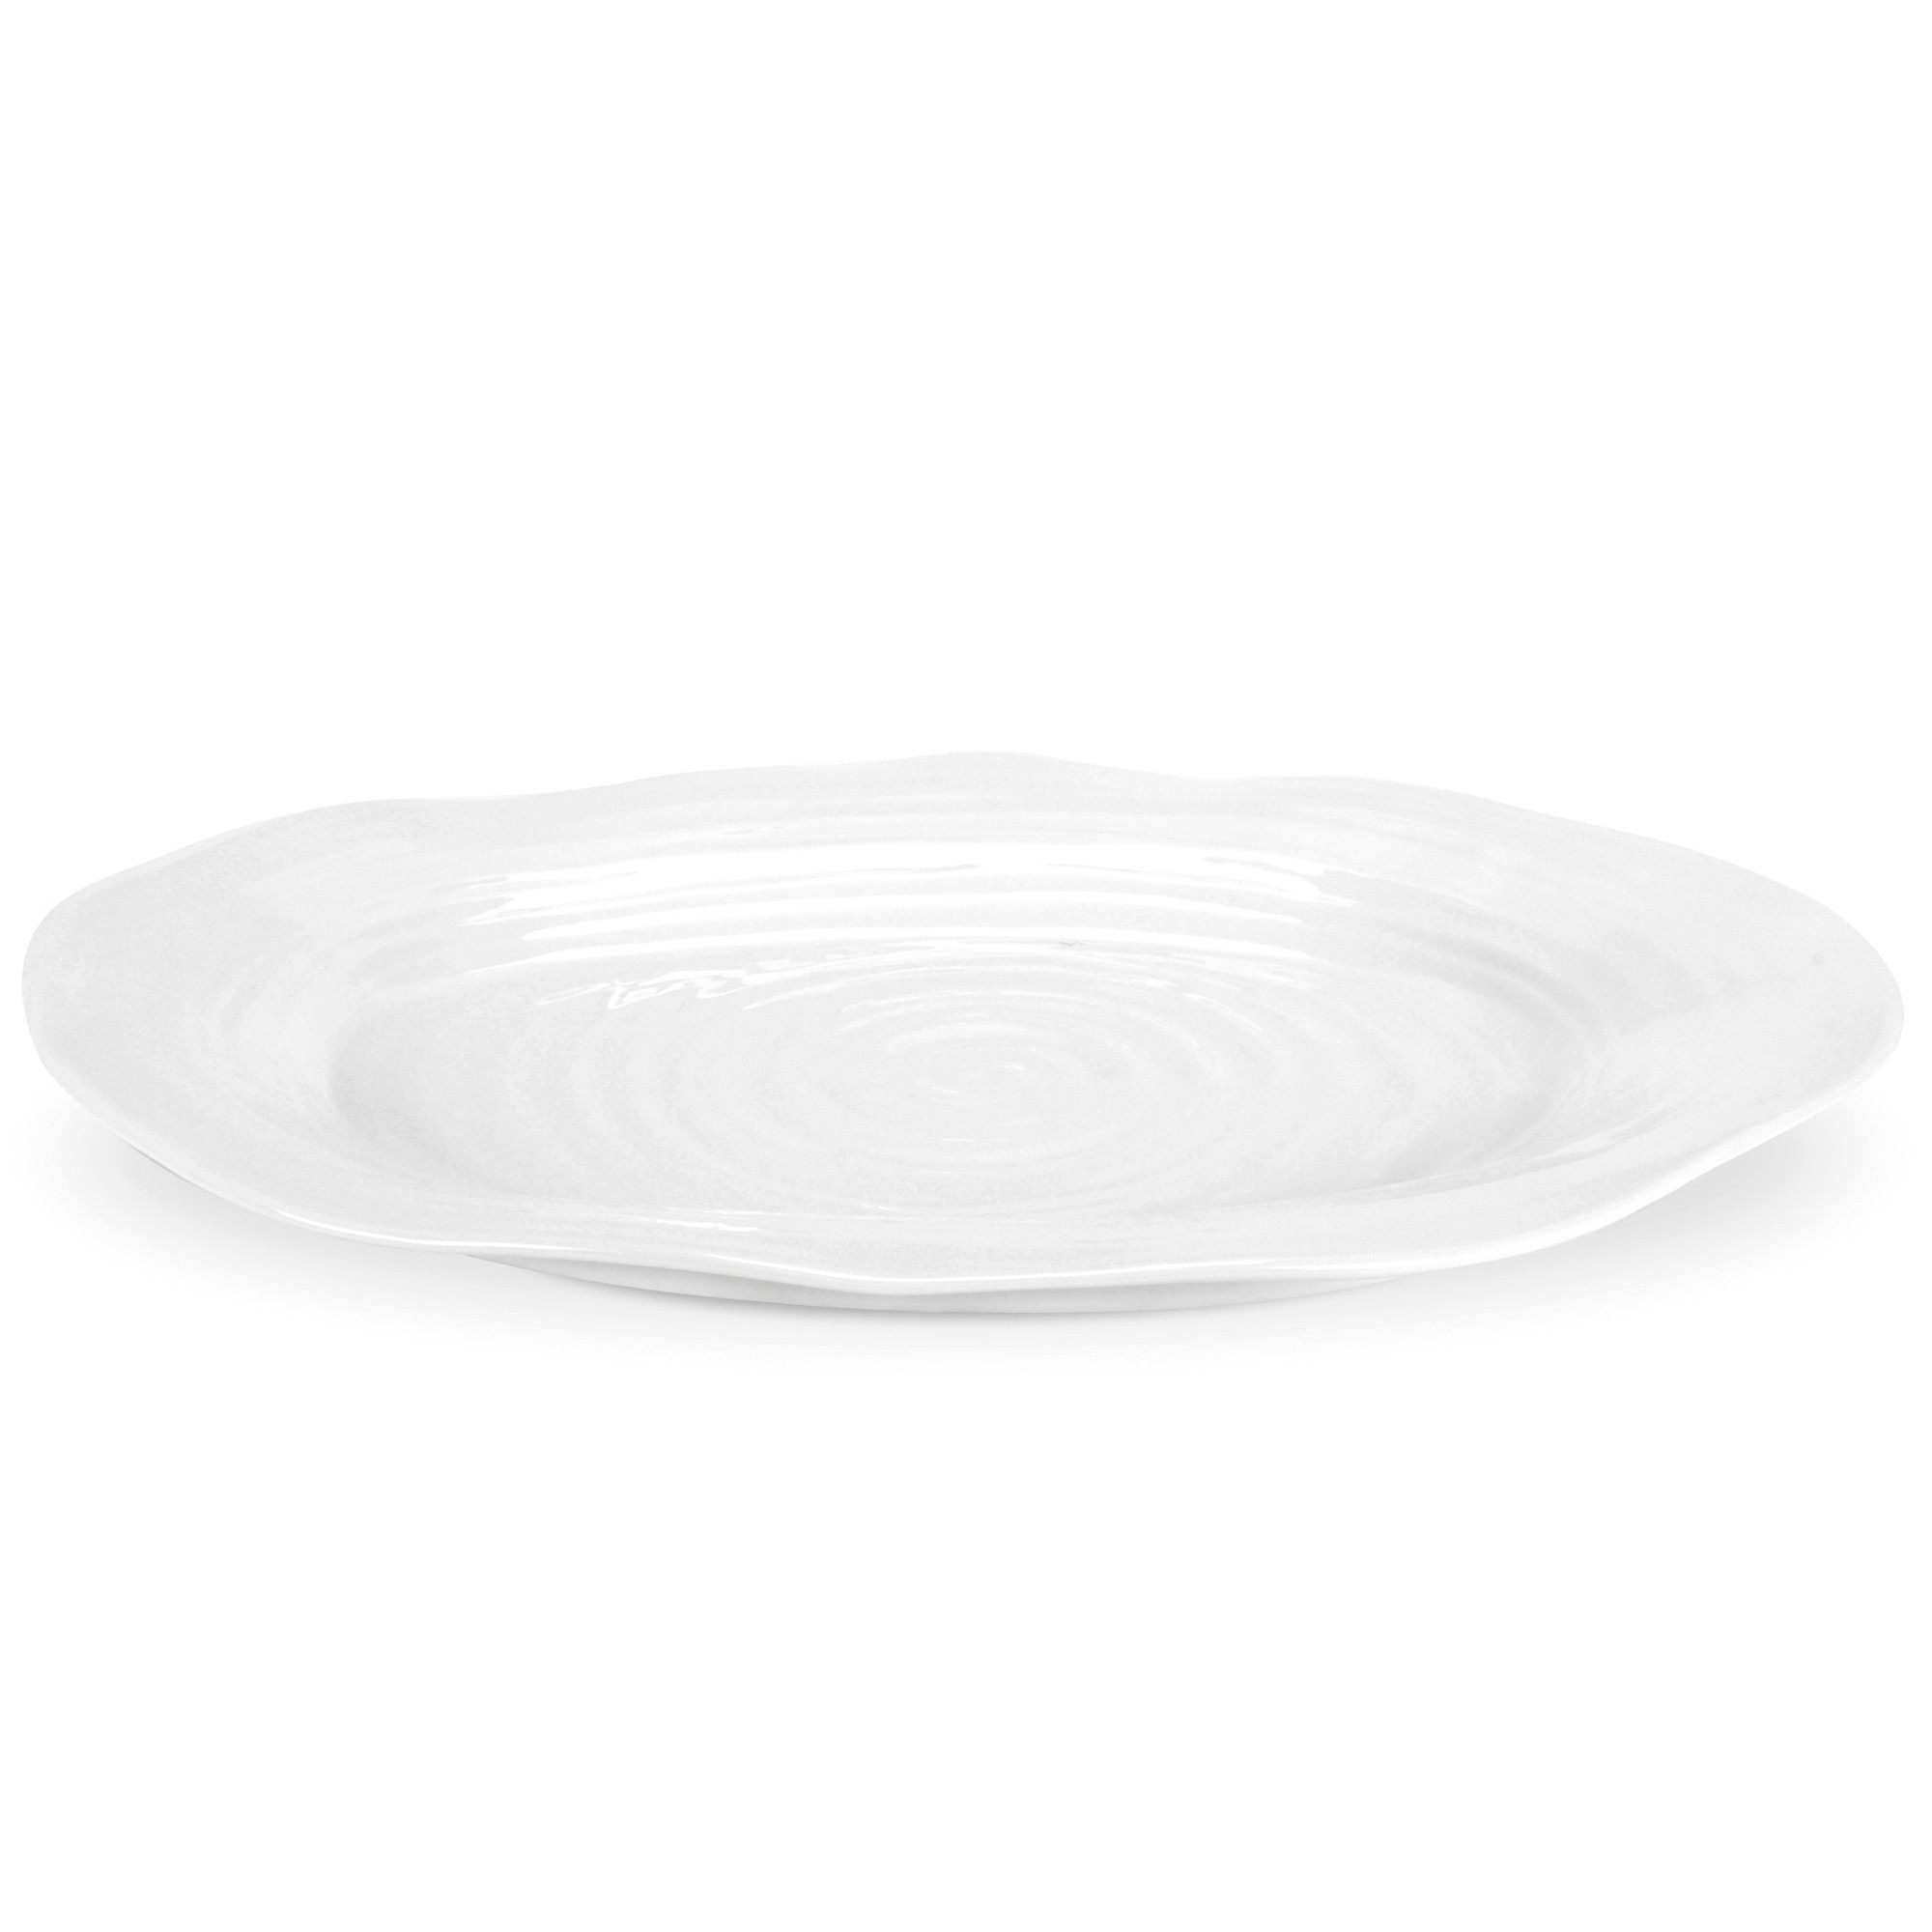 Sophie Conran Portmeirion White Large Oval Plate 43cm